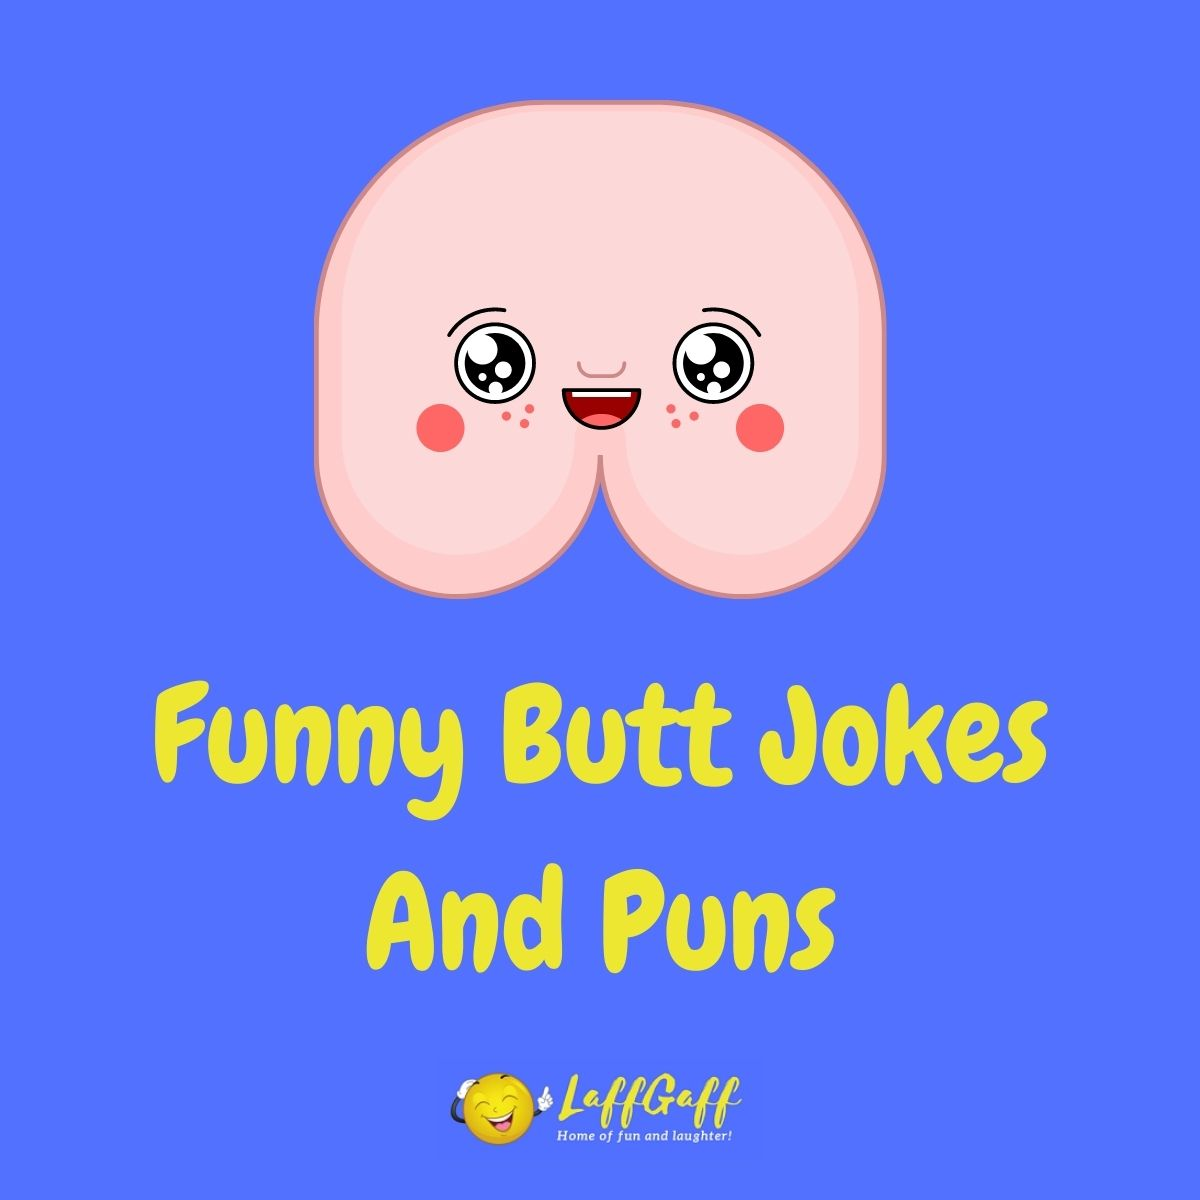 Featured image for a page of funny butt jokes and puns.